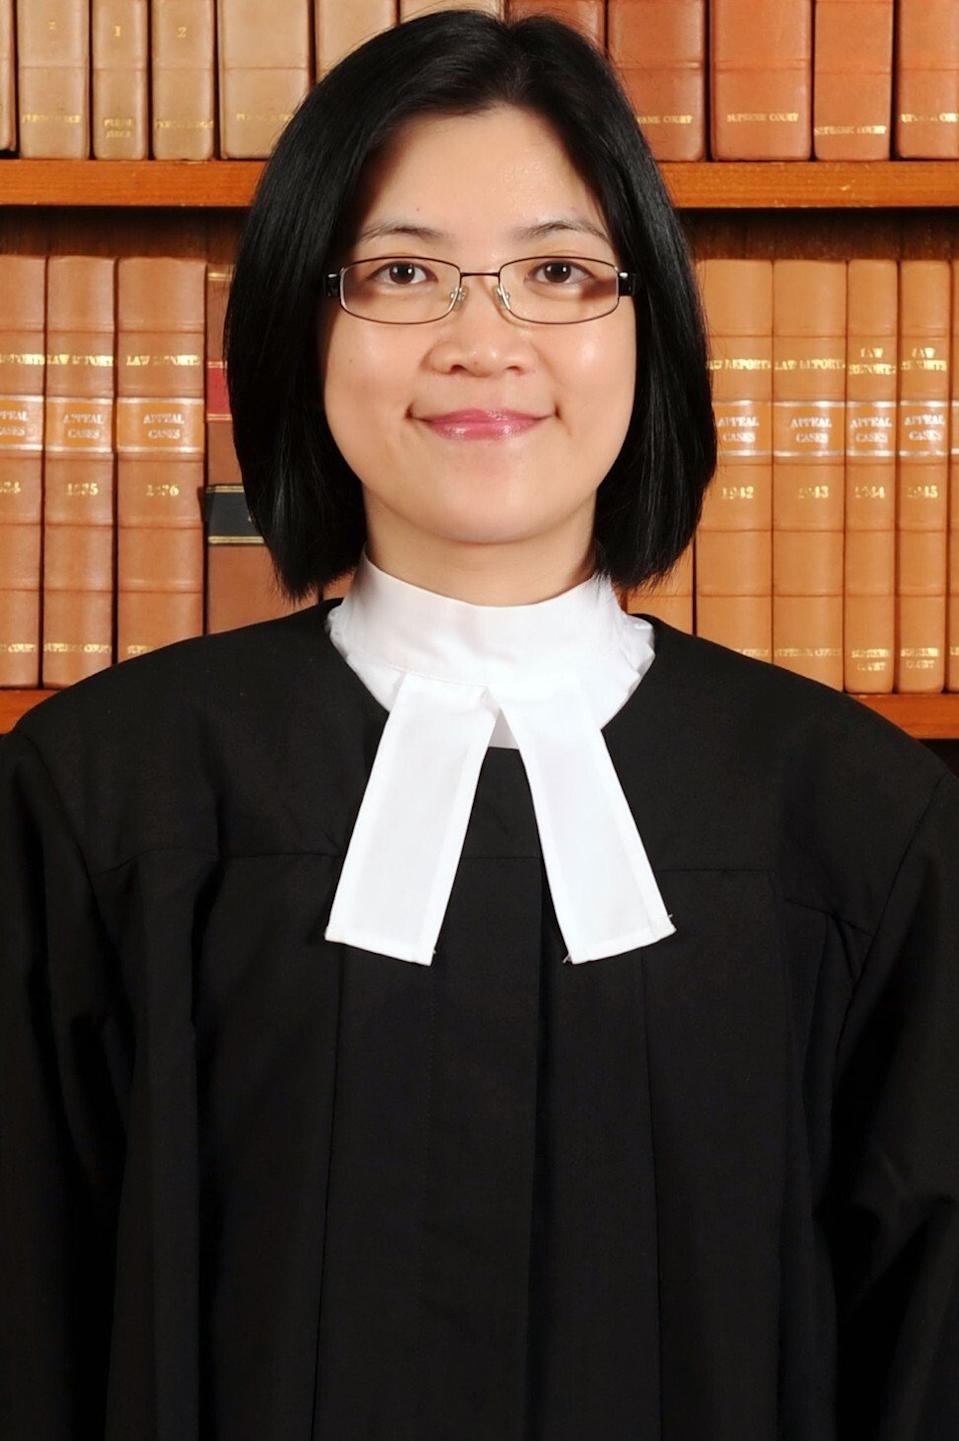 Magistrate Ivy Chui says the court cannot condone the act of using a knife to assault others. Photo: SCMP